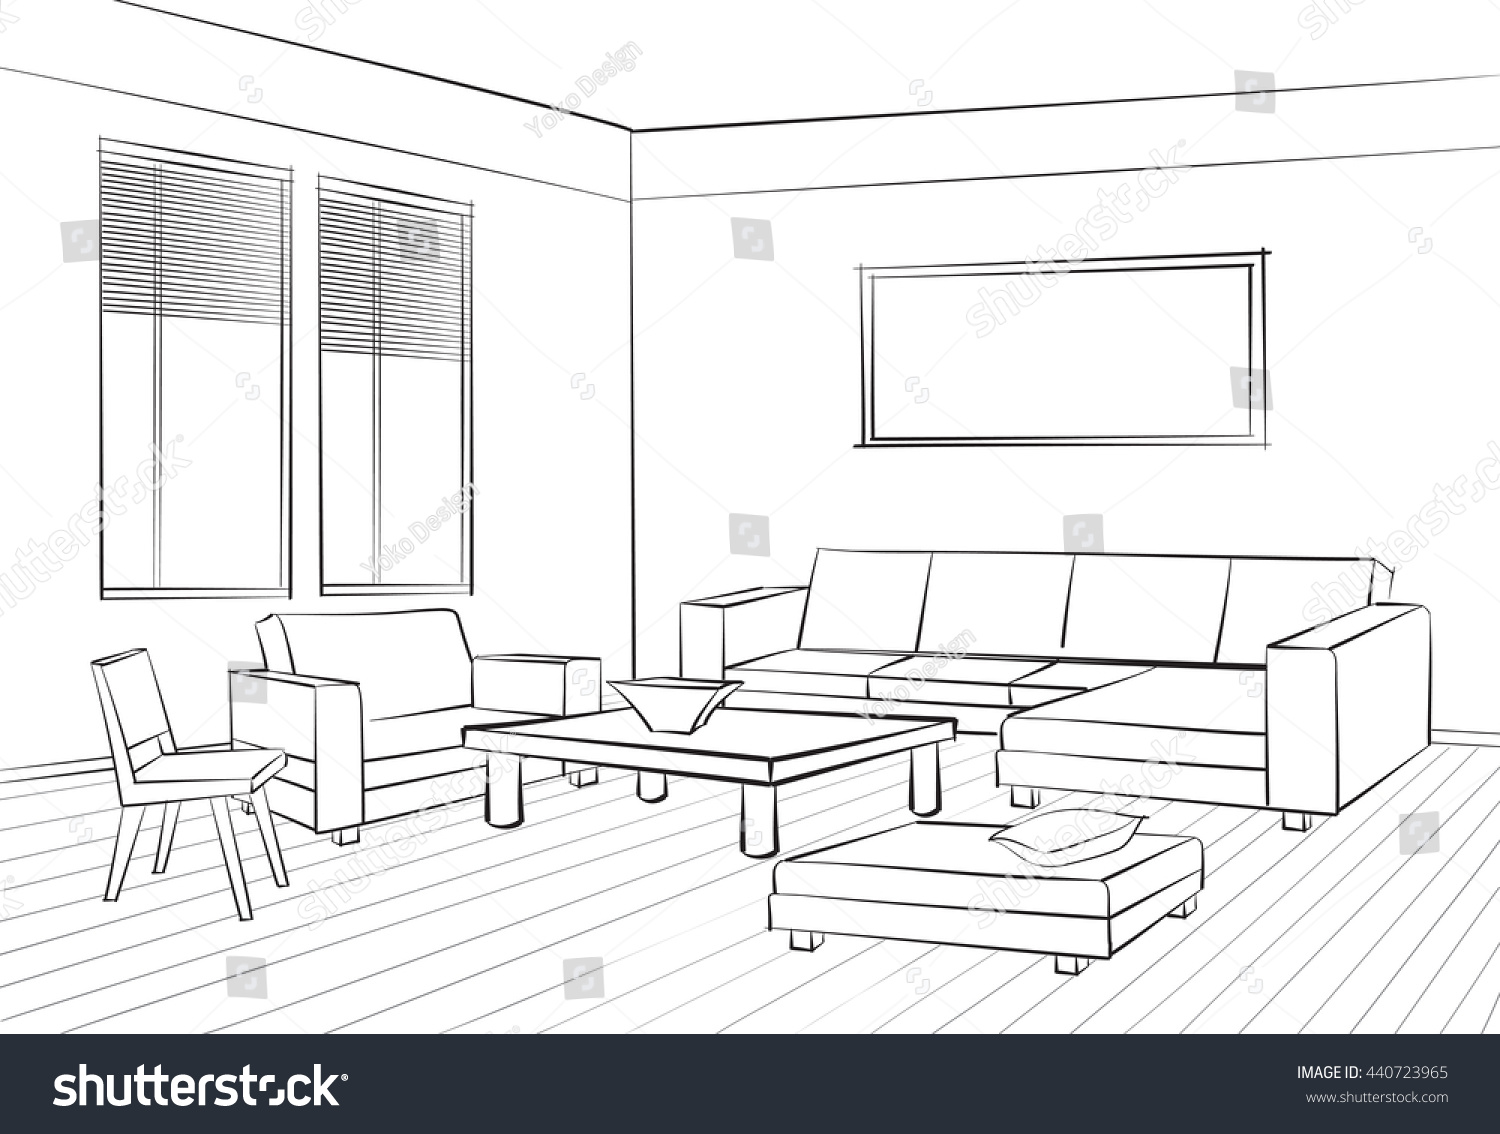 One Point Perspective Room Interior